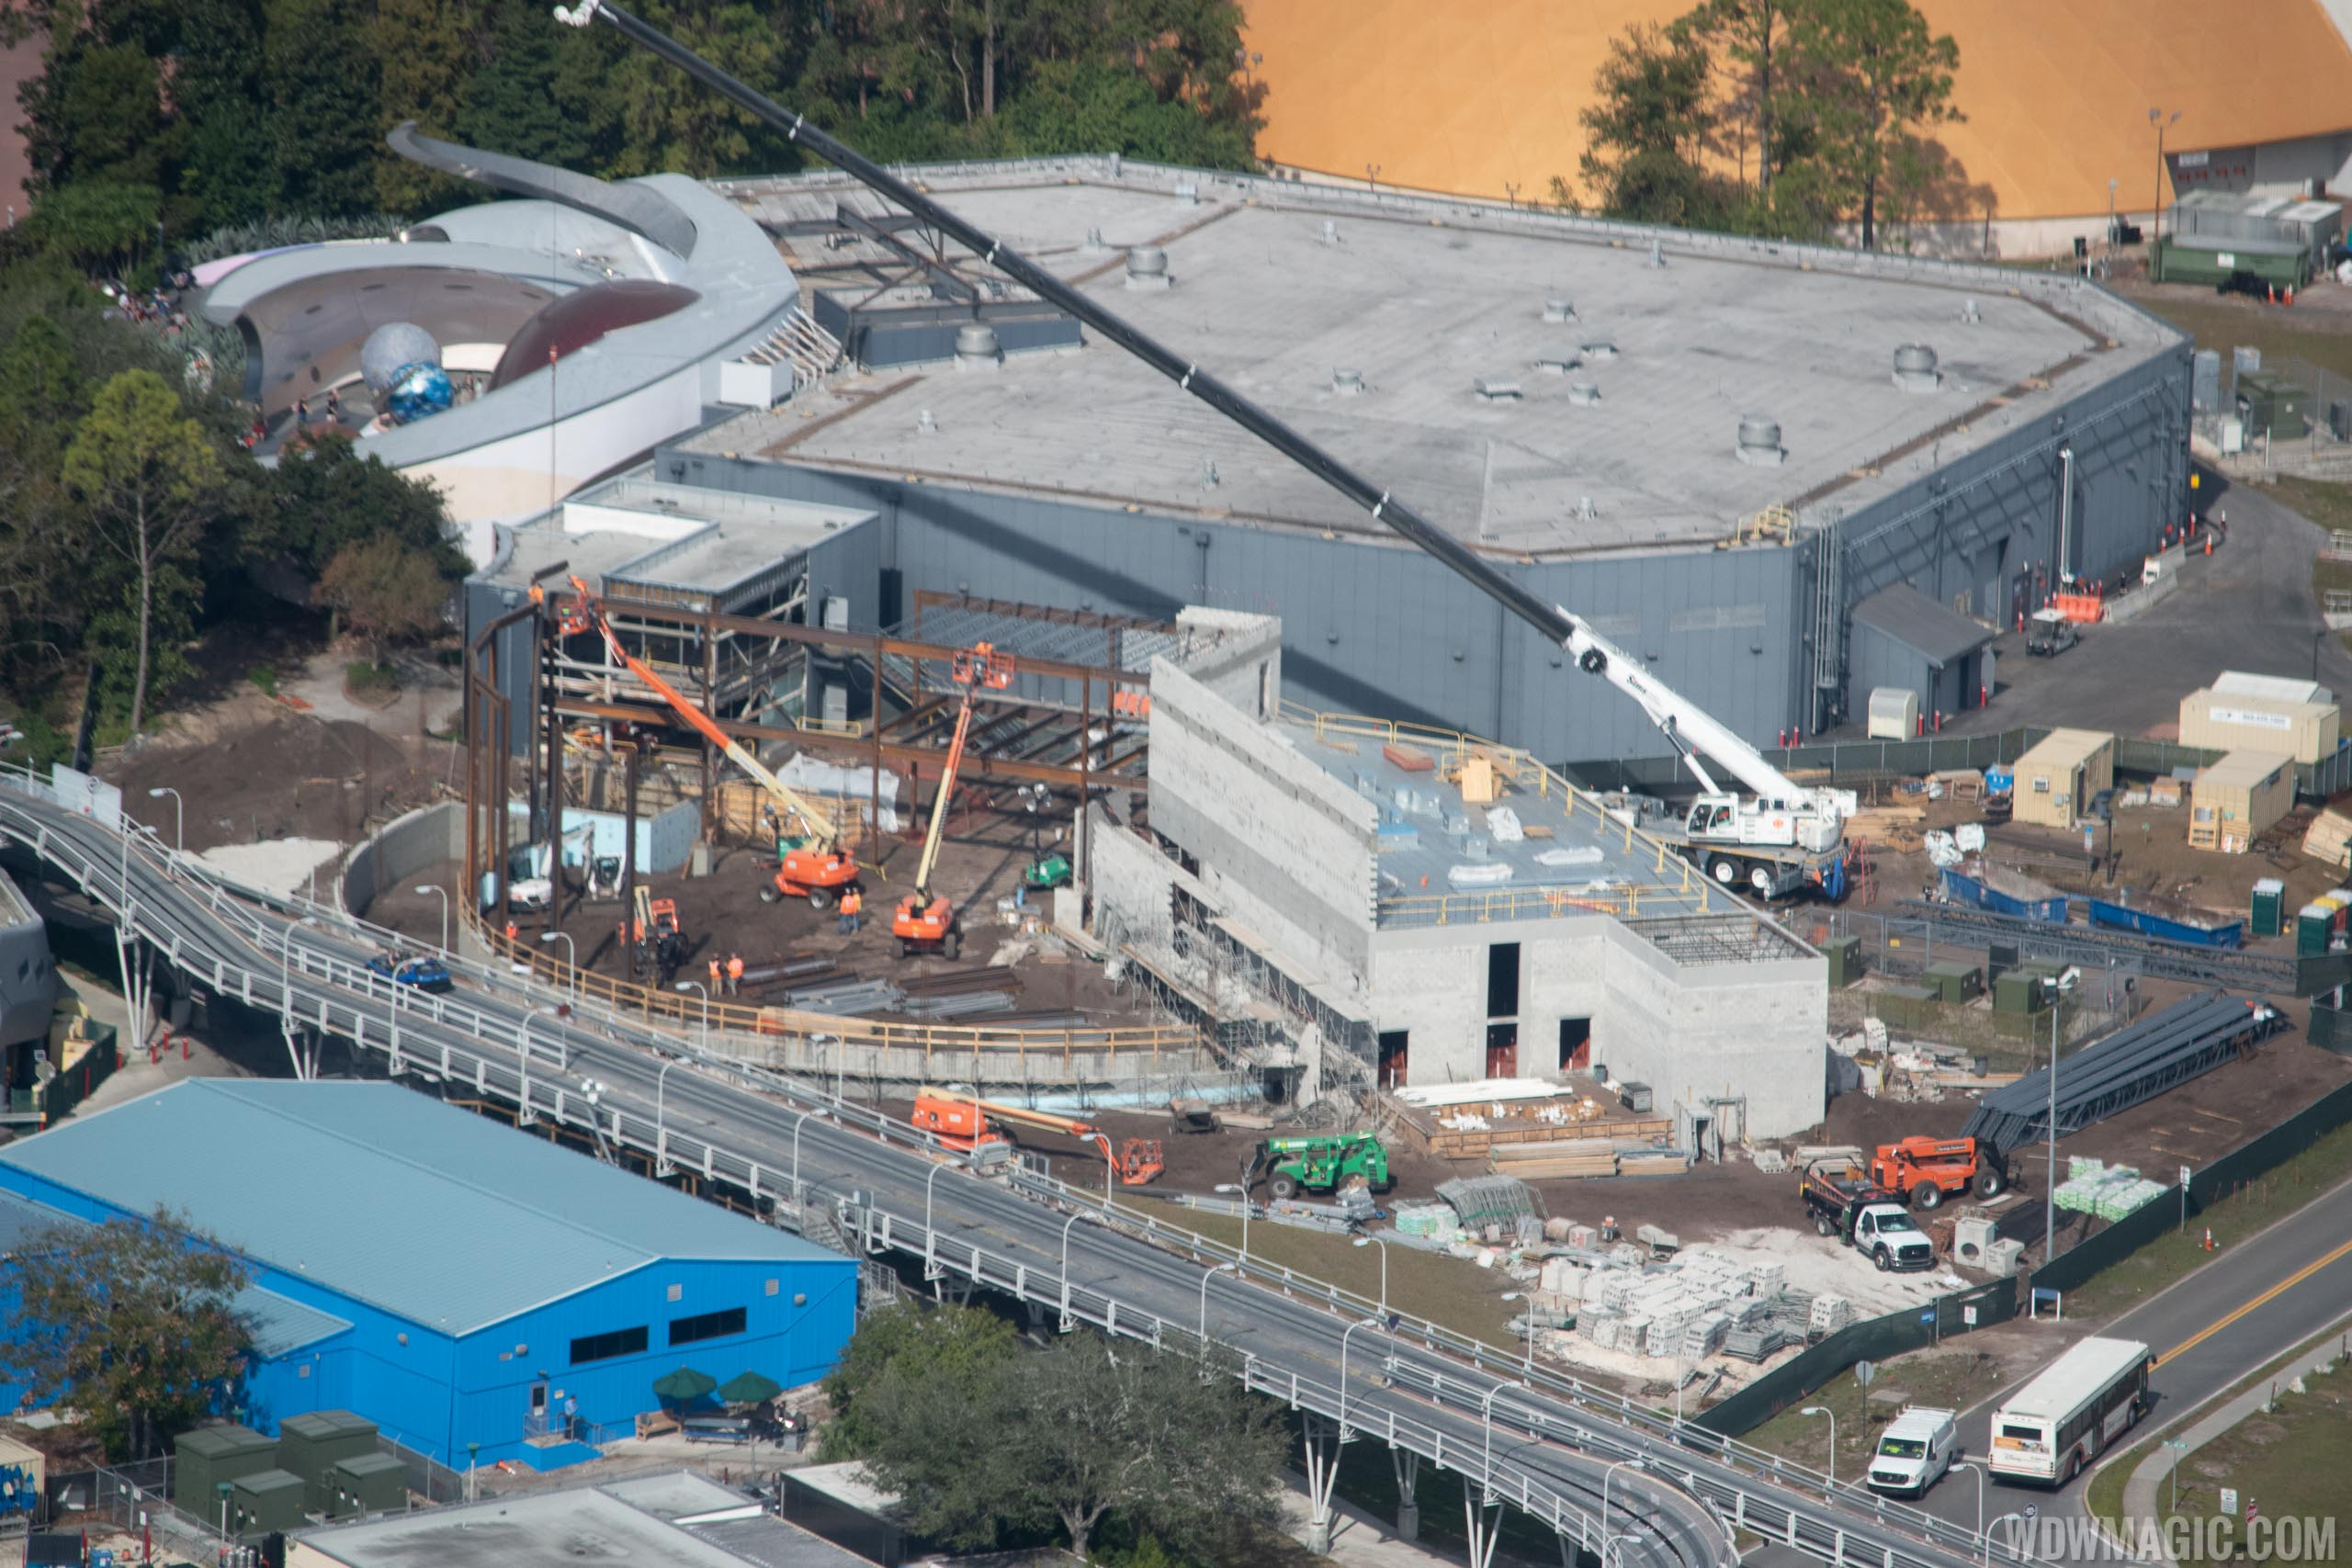 Epcot Space Restaurant construction - January 2019